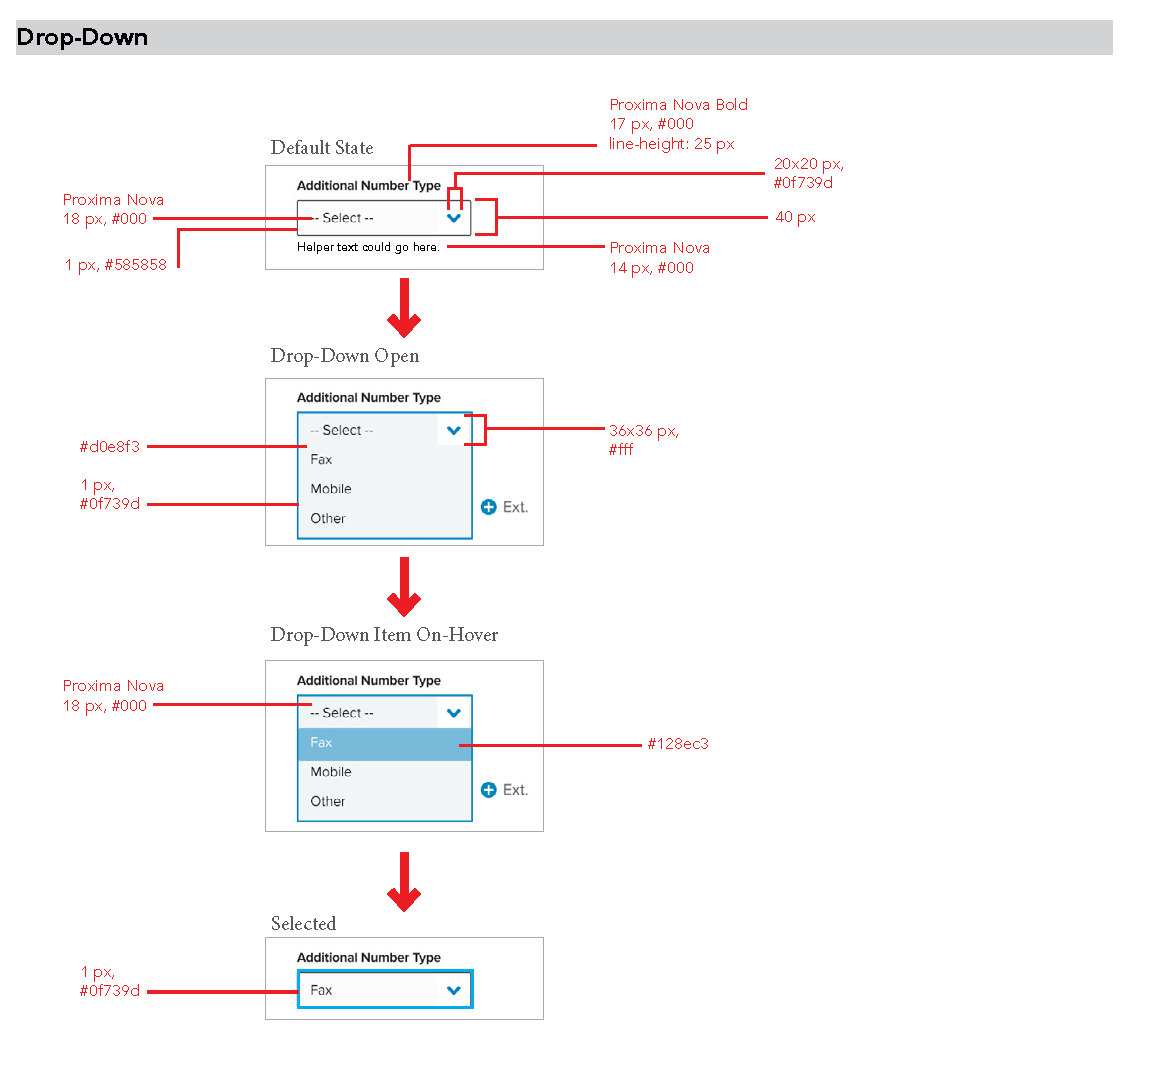 TJC_NYBE_UXDesign_Batch1and2_DesignSpec_v02.0_Page_19-2.png